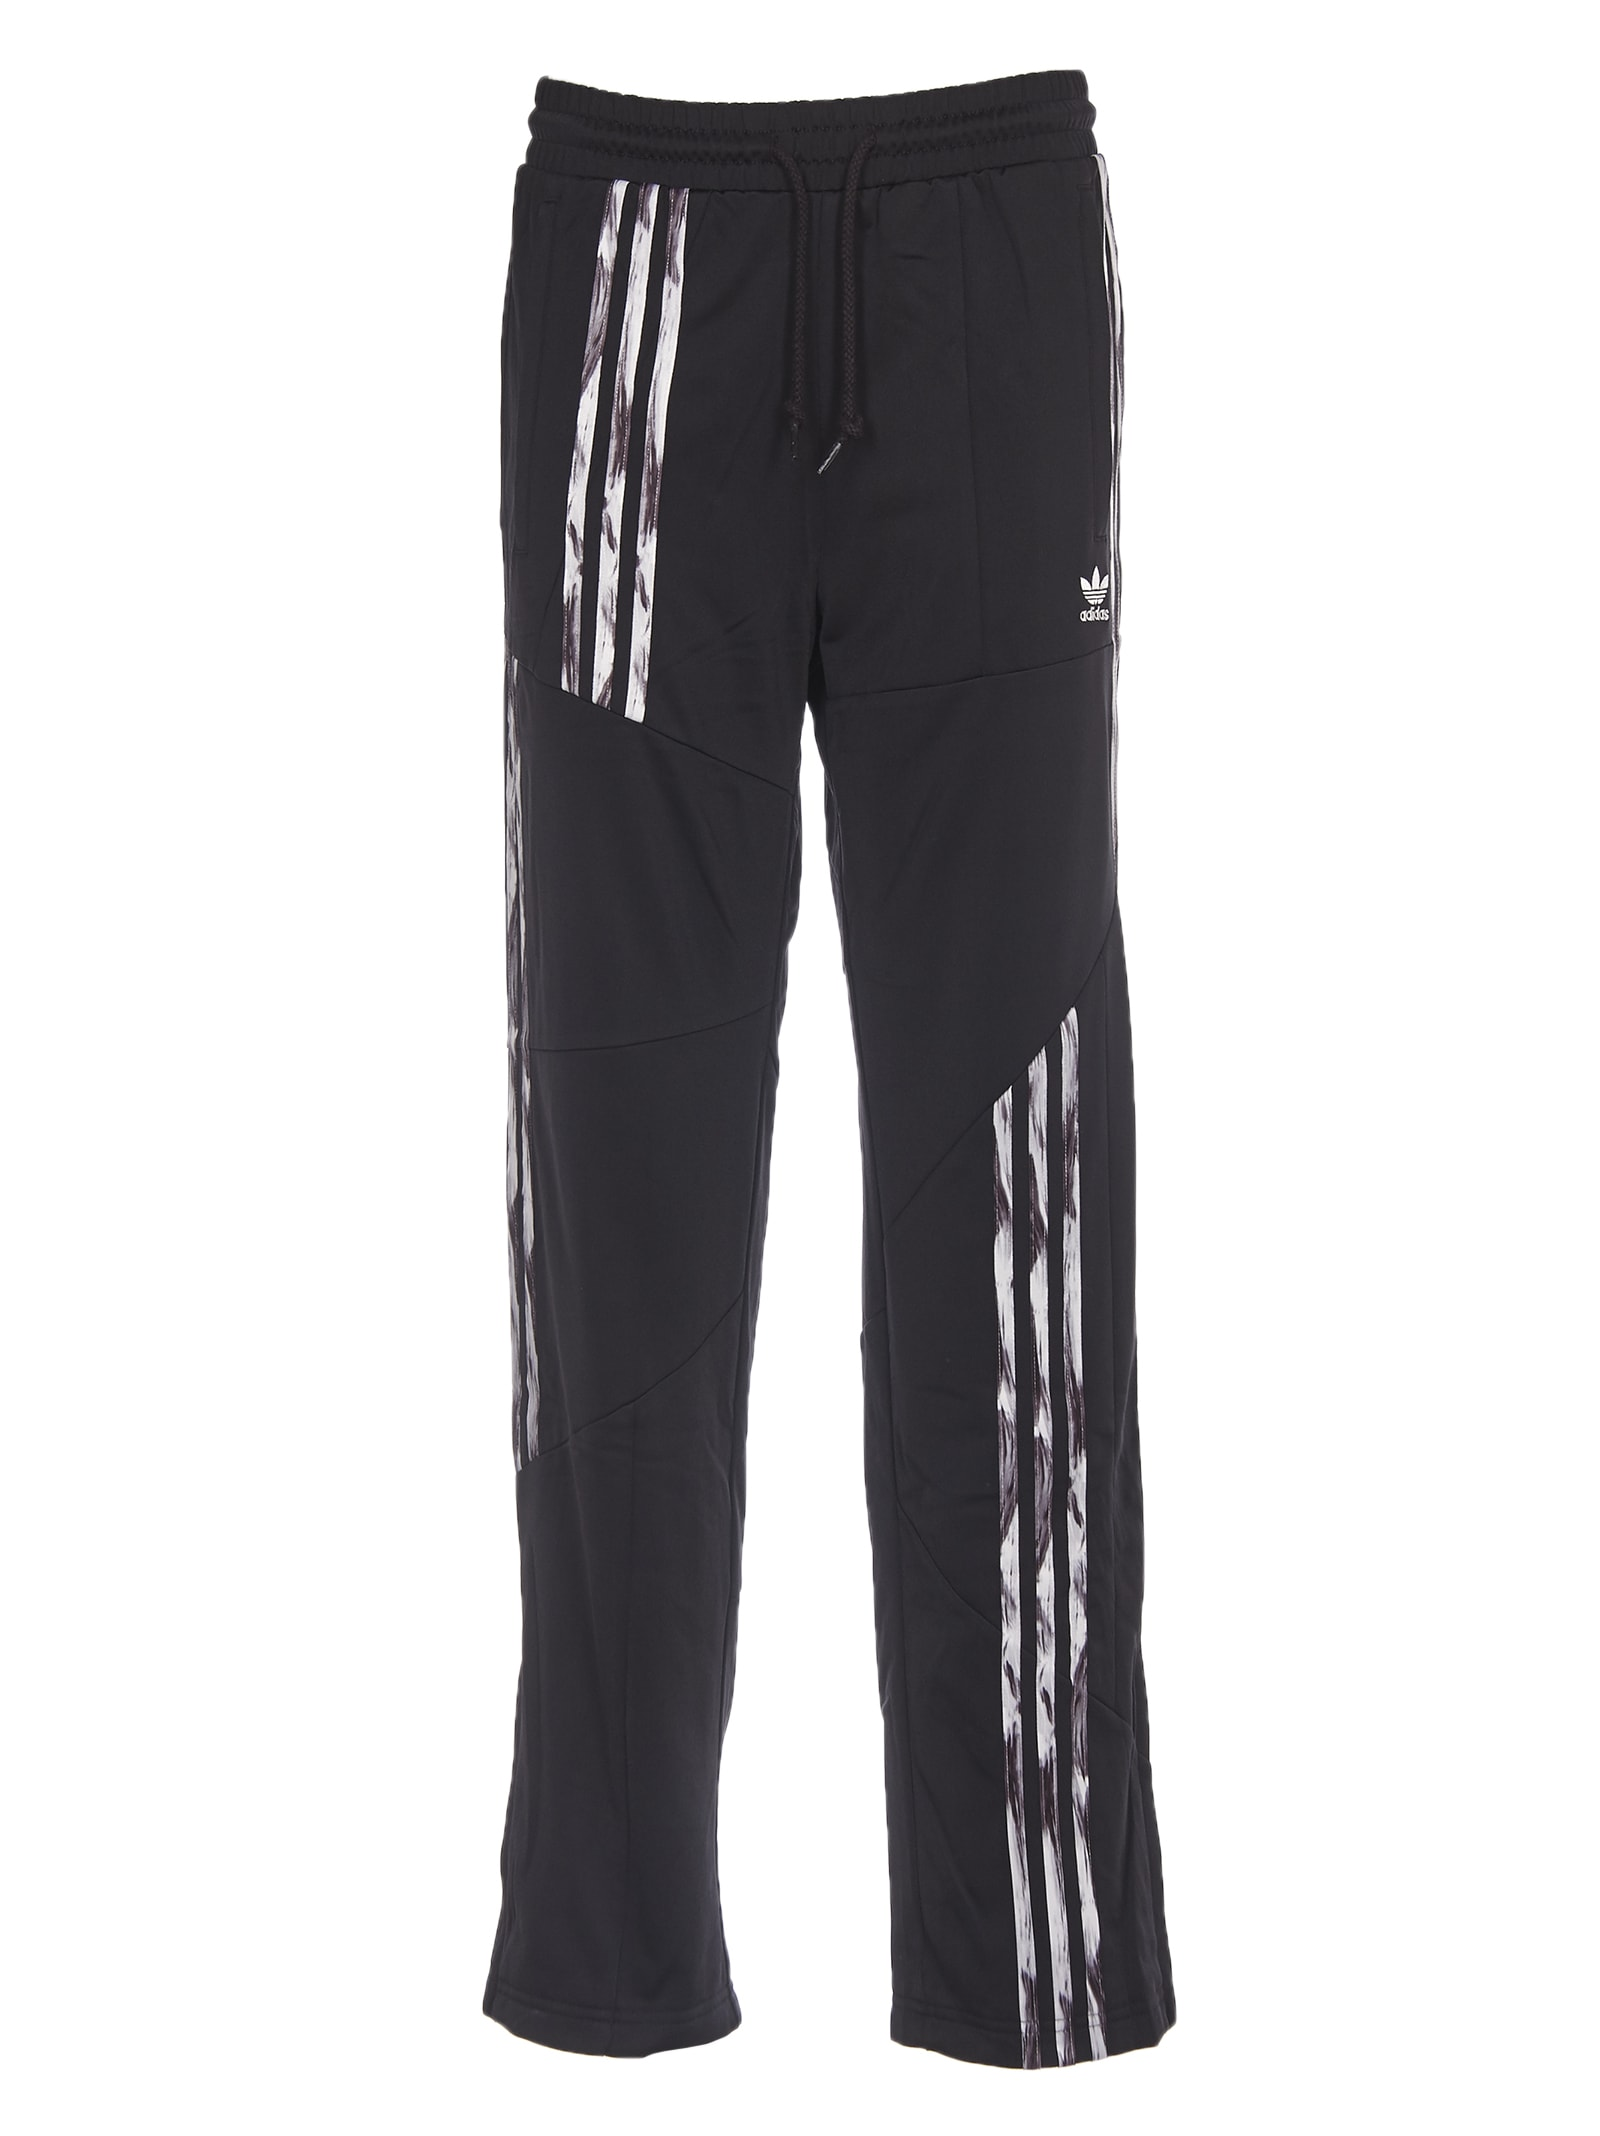 Best price on the market at italist | Adidas Originals Adidas Originals Adidas Originals danielle Cathari Black Trousers